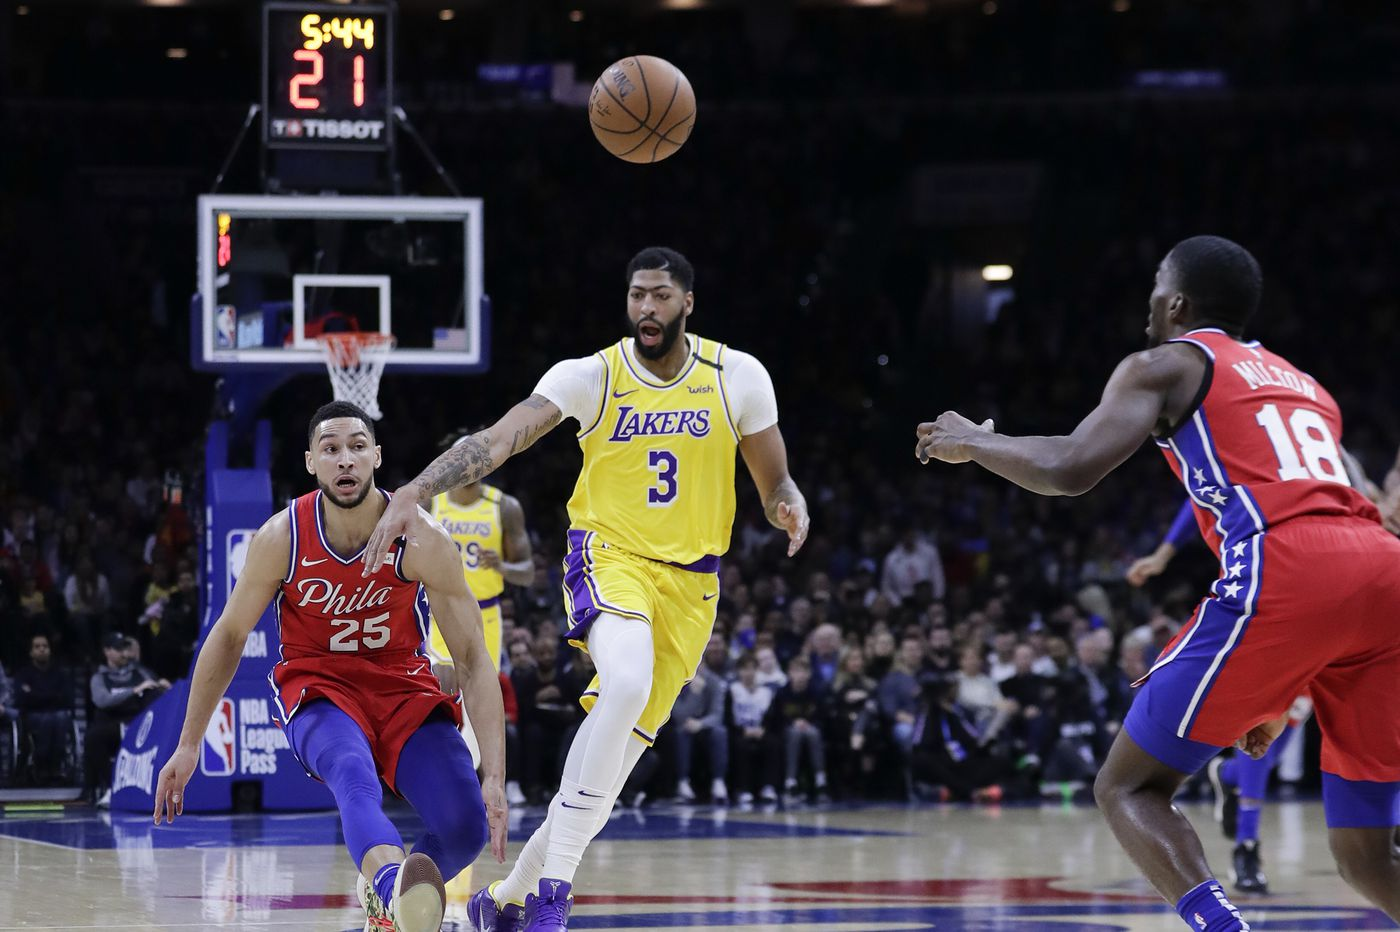 Sixers-Lakers best/worst: Ben Simmons' aggressive versatility, Matisse Thybulle's thievery, LeBron James' mile